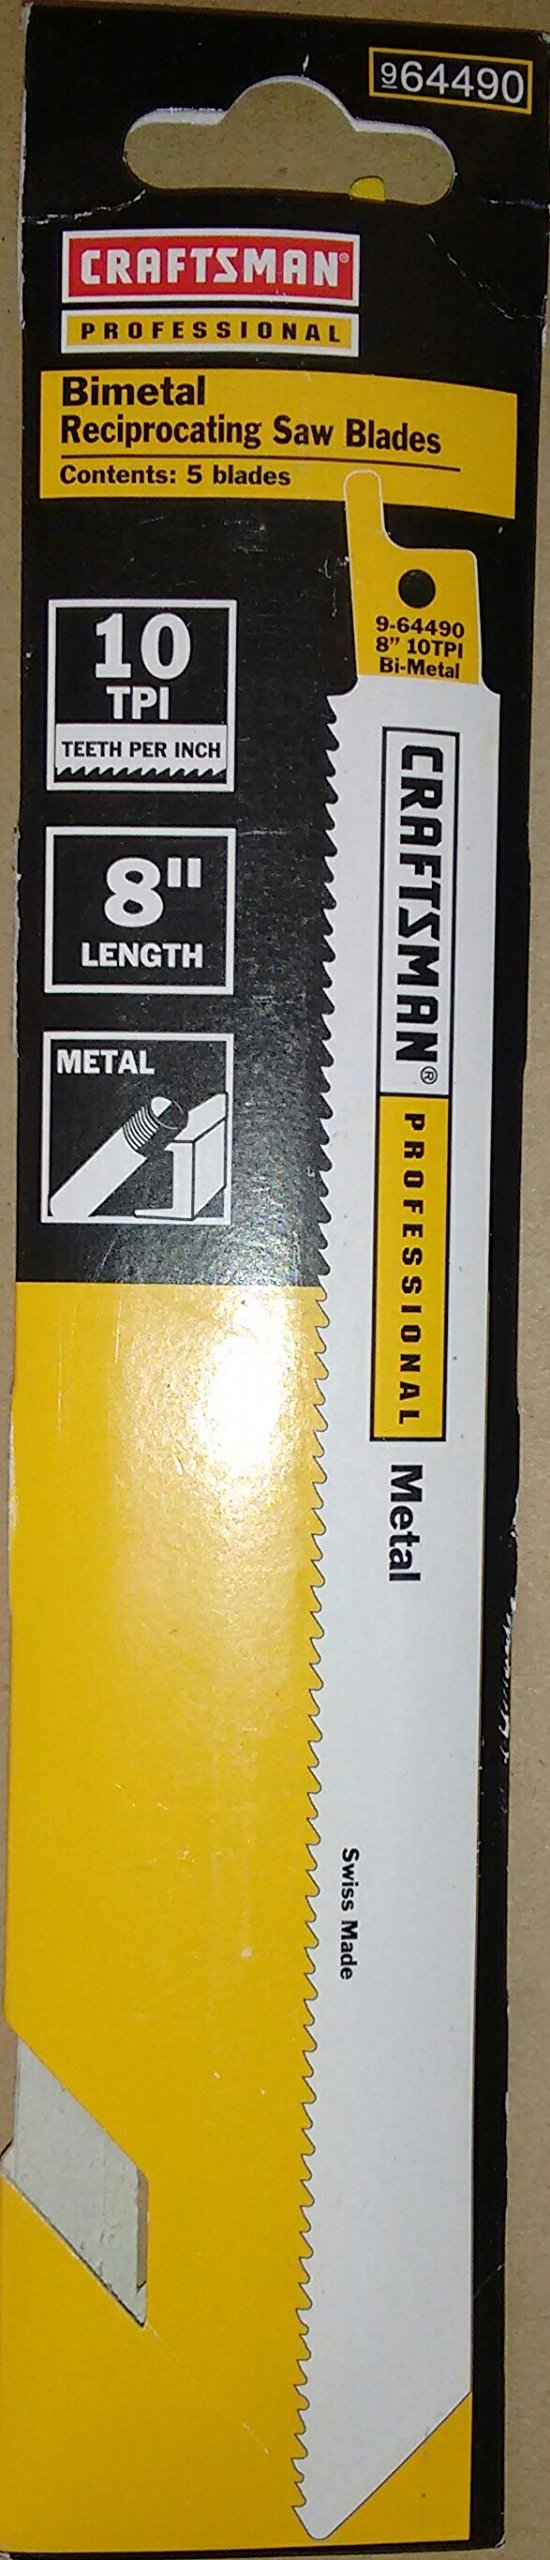 Craftsman Professional 8 in. 10 TPI Reciprocating Saw Blades 5 pc, Metal, Made in Switzerland 9-64490